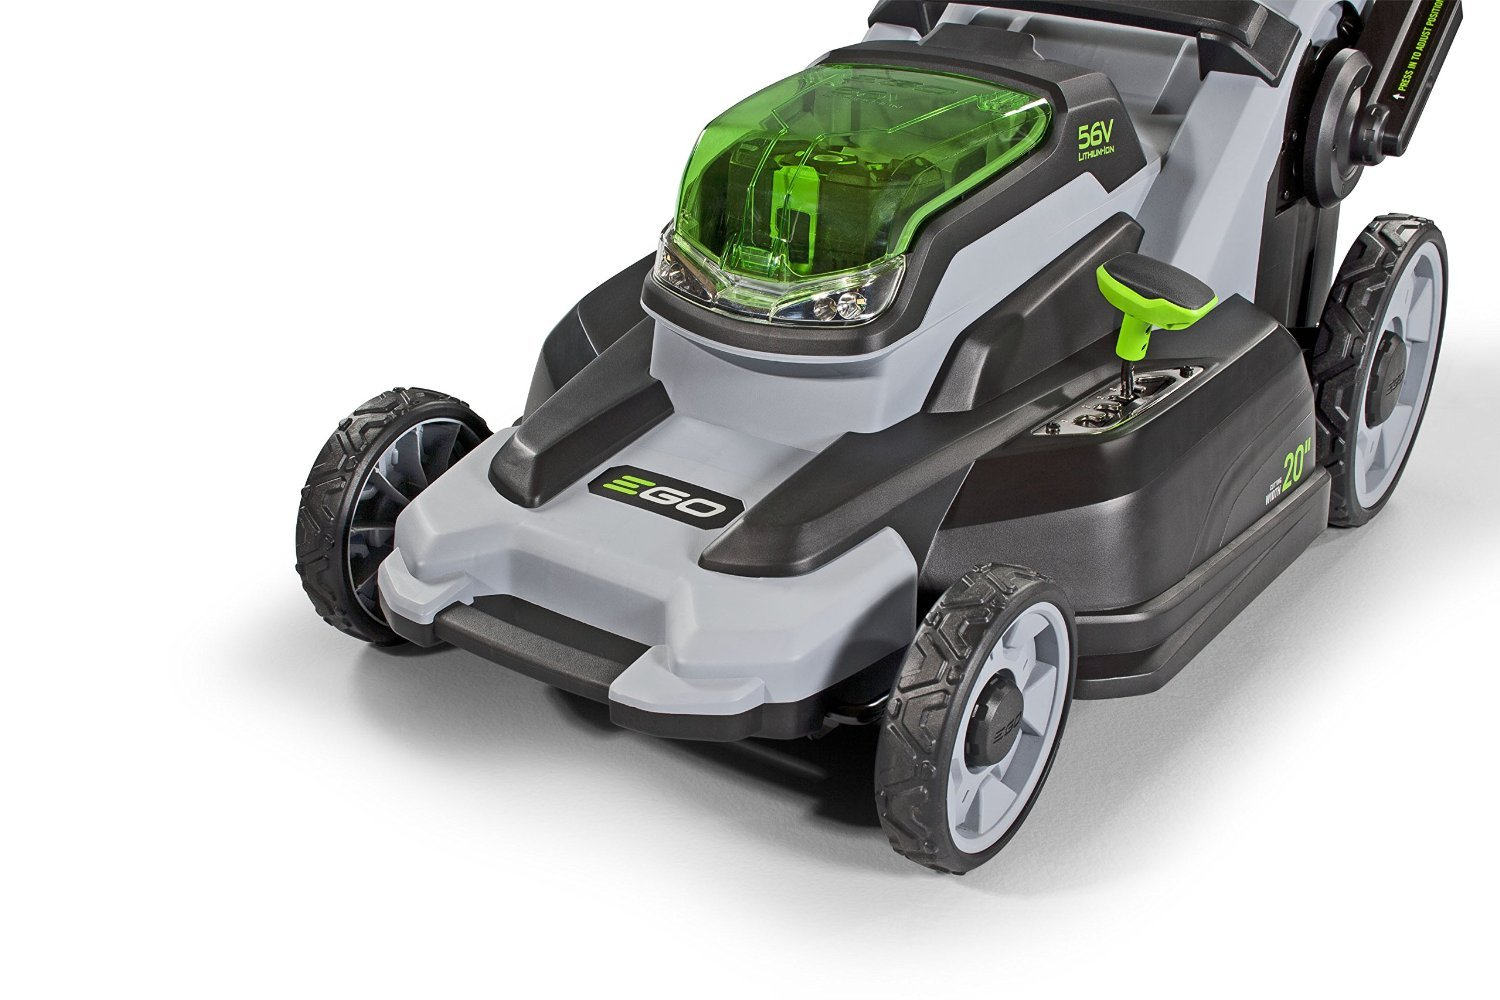 EGO Power+ LM2000-S 20-Inch 56-Volt Lithium-Ion Cordless Walk Behind Lawn Mower (Battery and Charger Not Included) 3 Compatible with all EGO power+ arc lithium batteries 20 in. cut capacity Weather-resistant construction